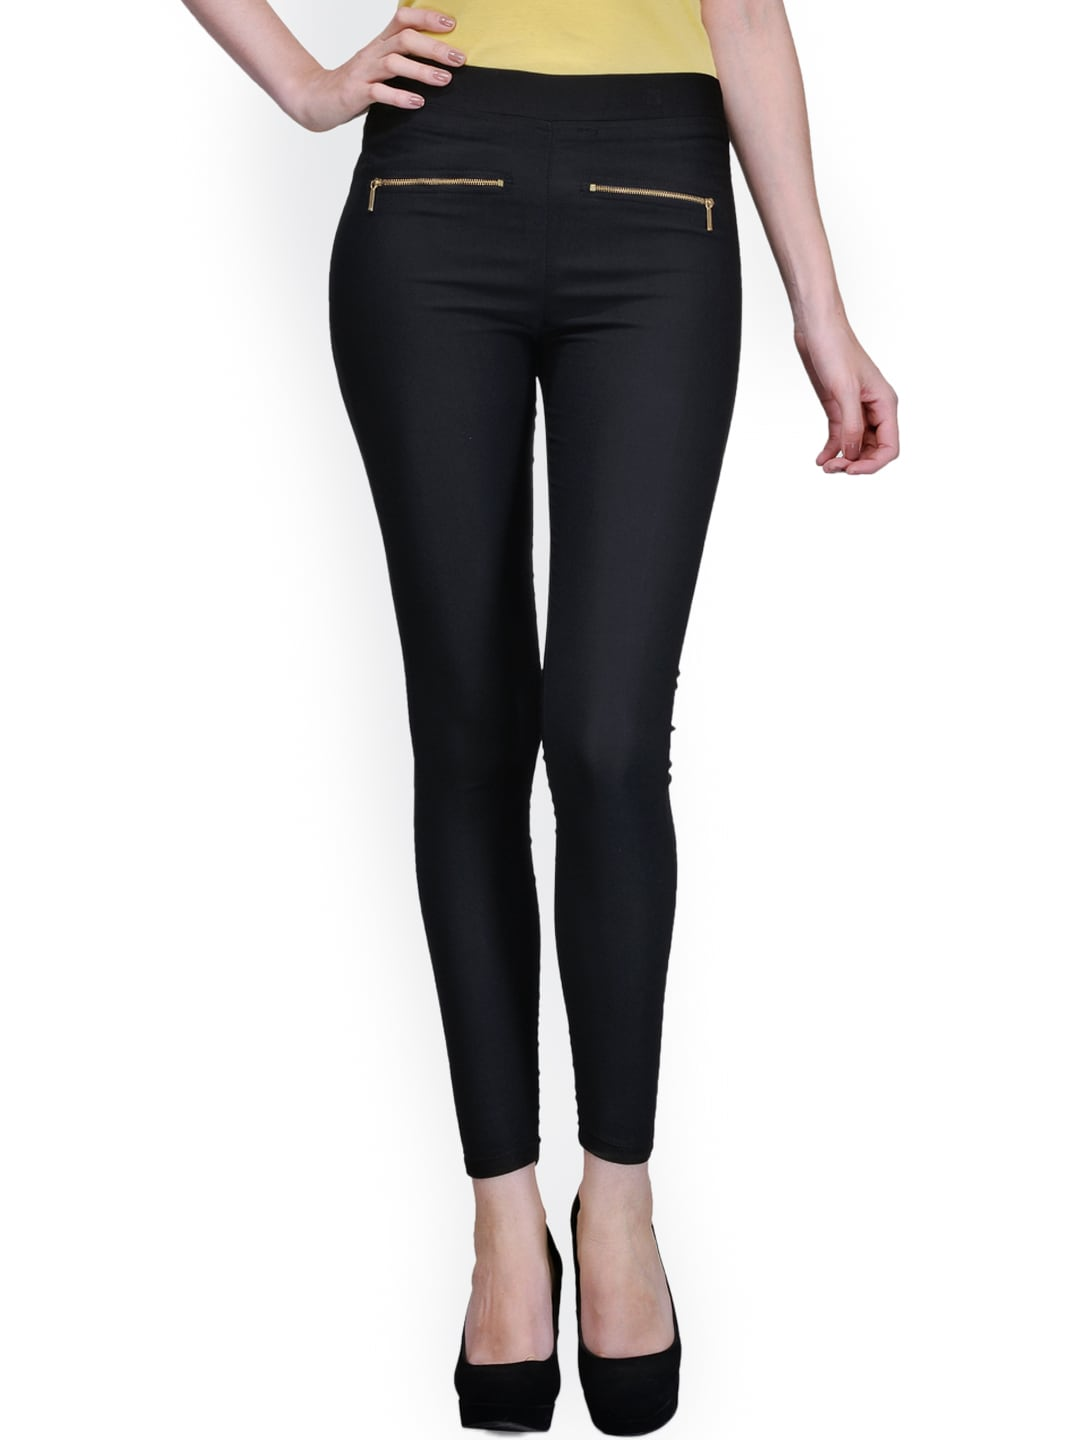 c23d8bb60c9 Jeggings - Buy Jeggings For Women Online from Myntra